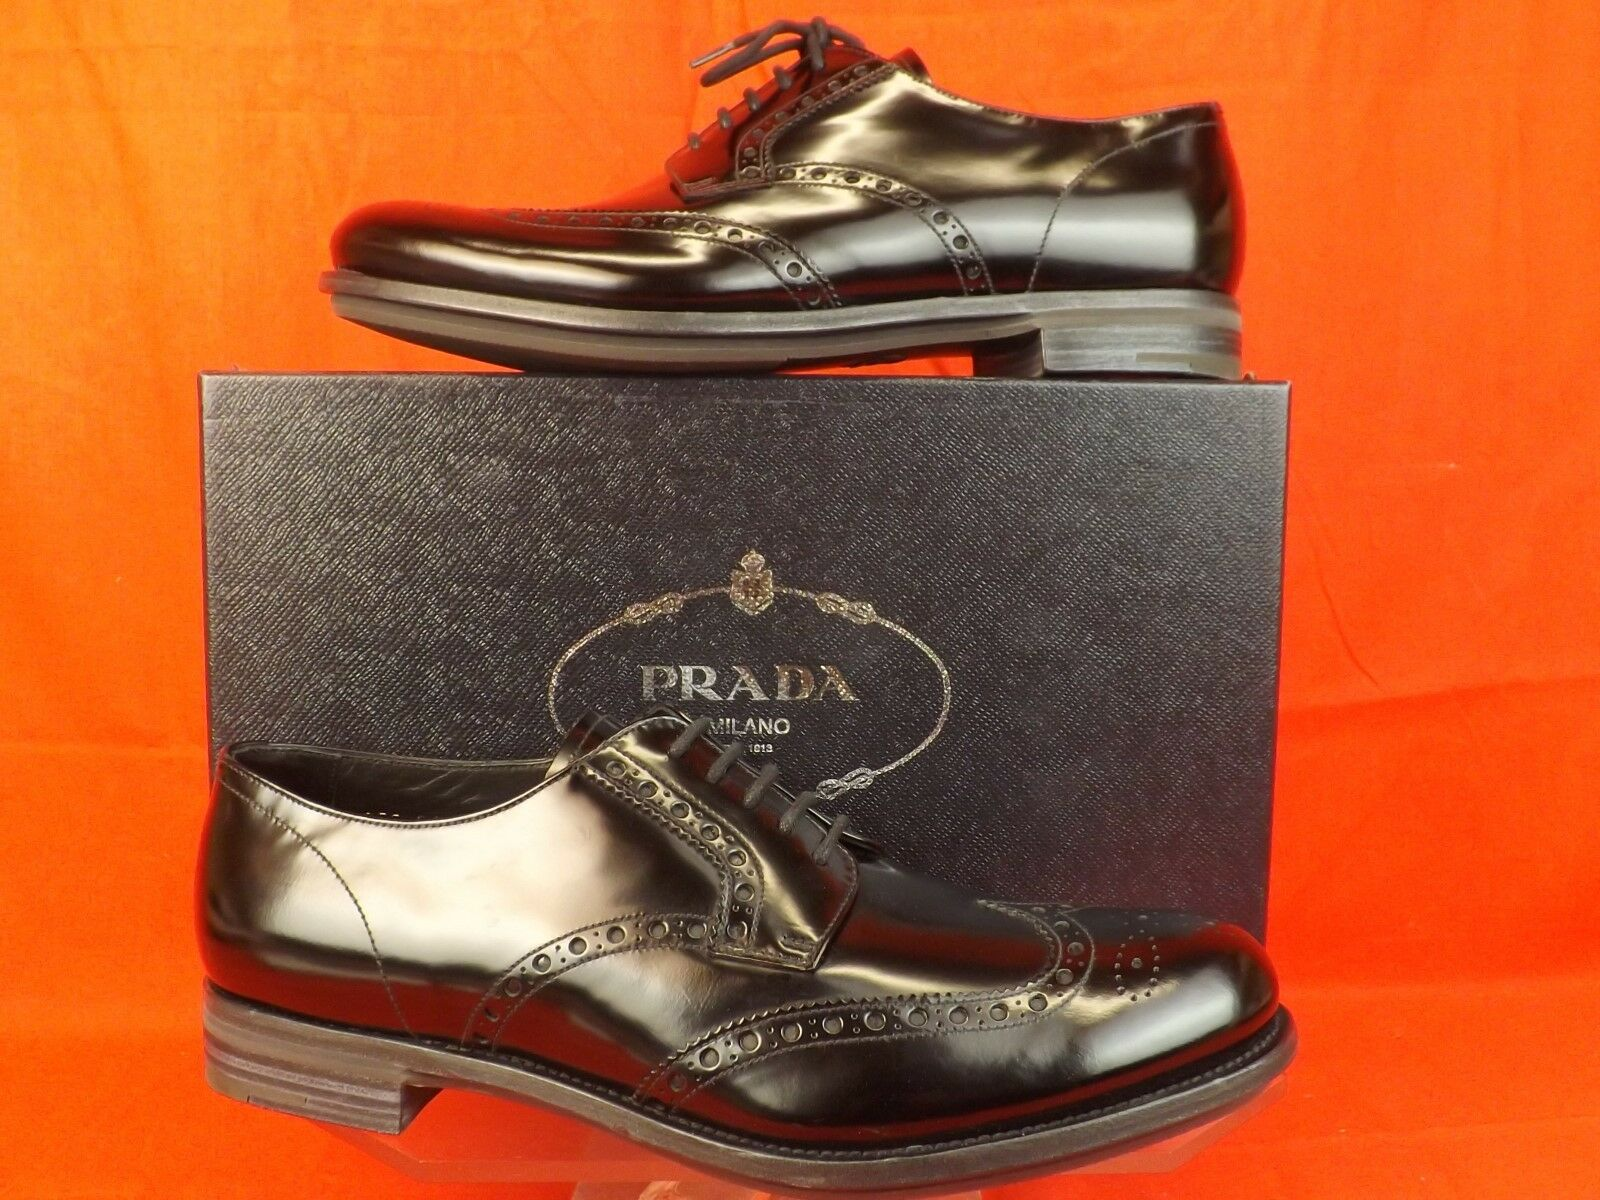 NIB PRADA BLACK PATENT LEATHER LACE UP WINGTIP PERFORATED OXFORDS 10 11  850